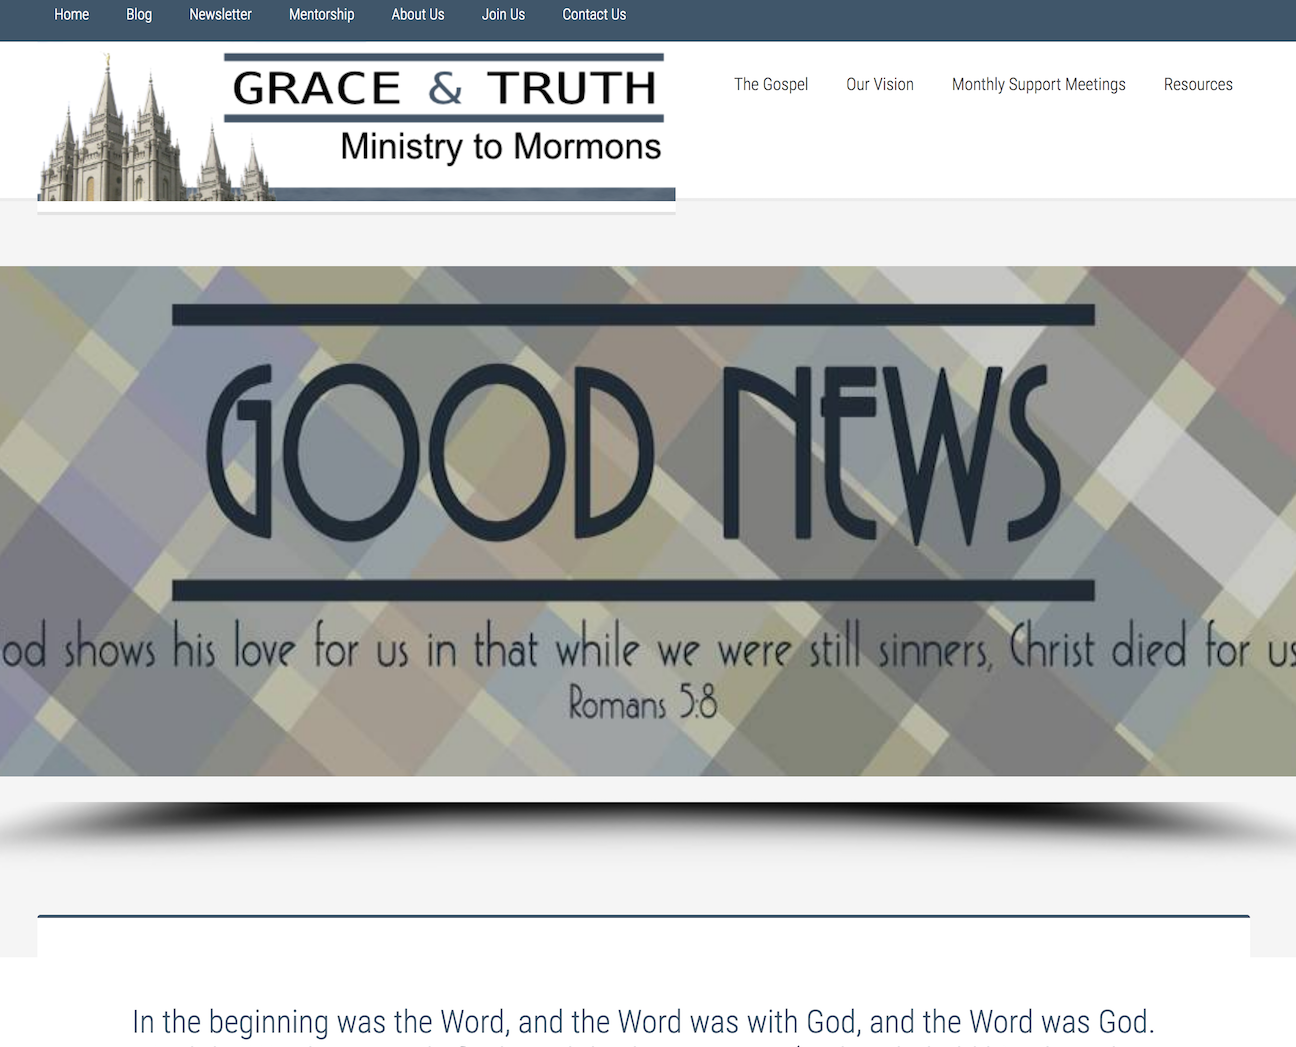 graceandtruth